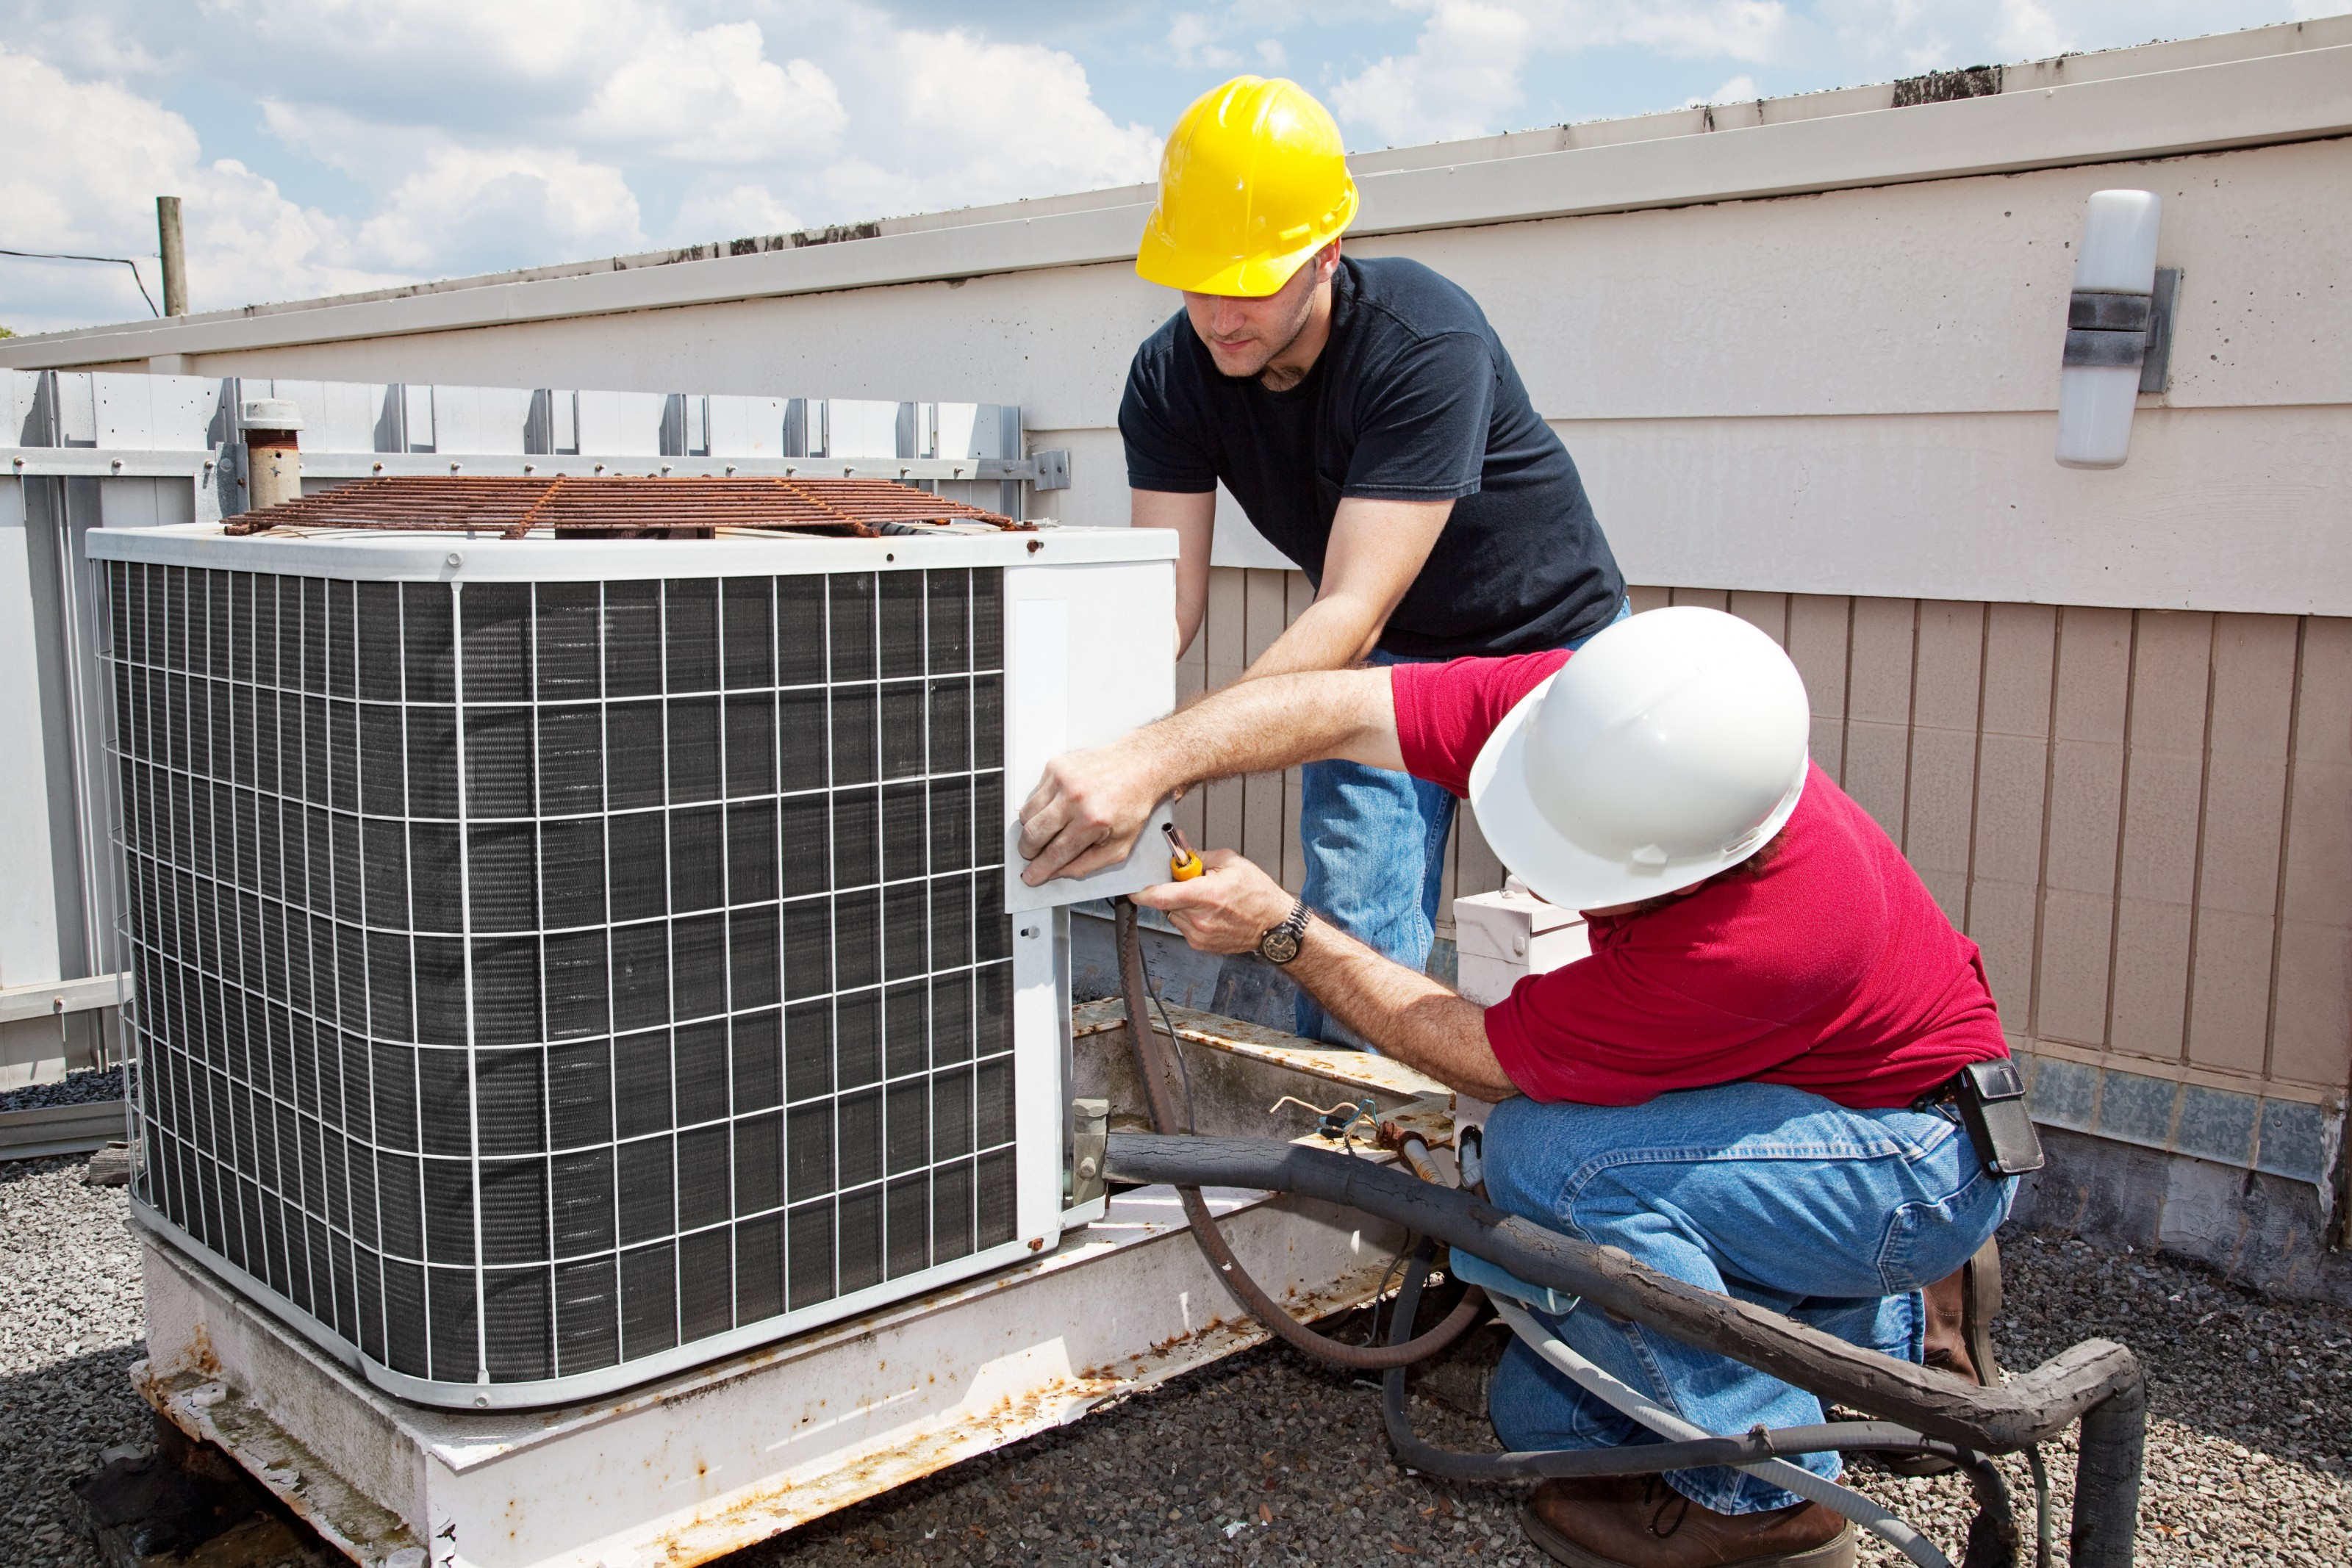 Application of the Internet of Things in HVAC